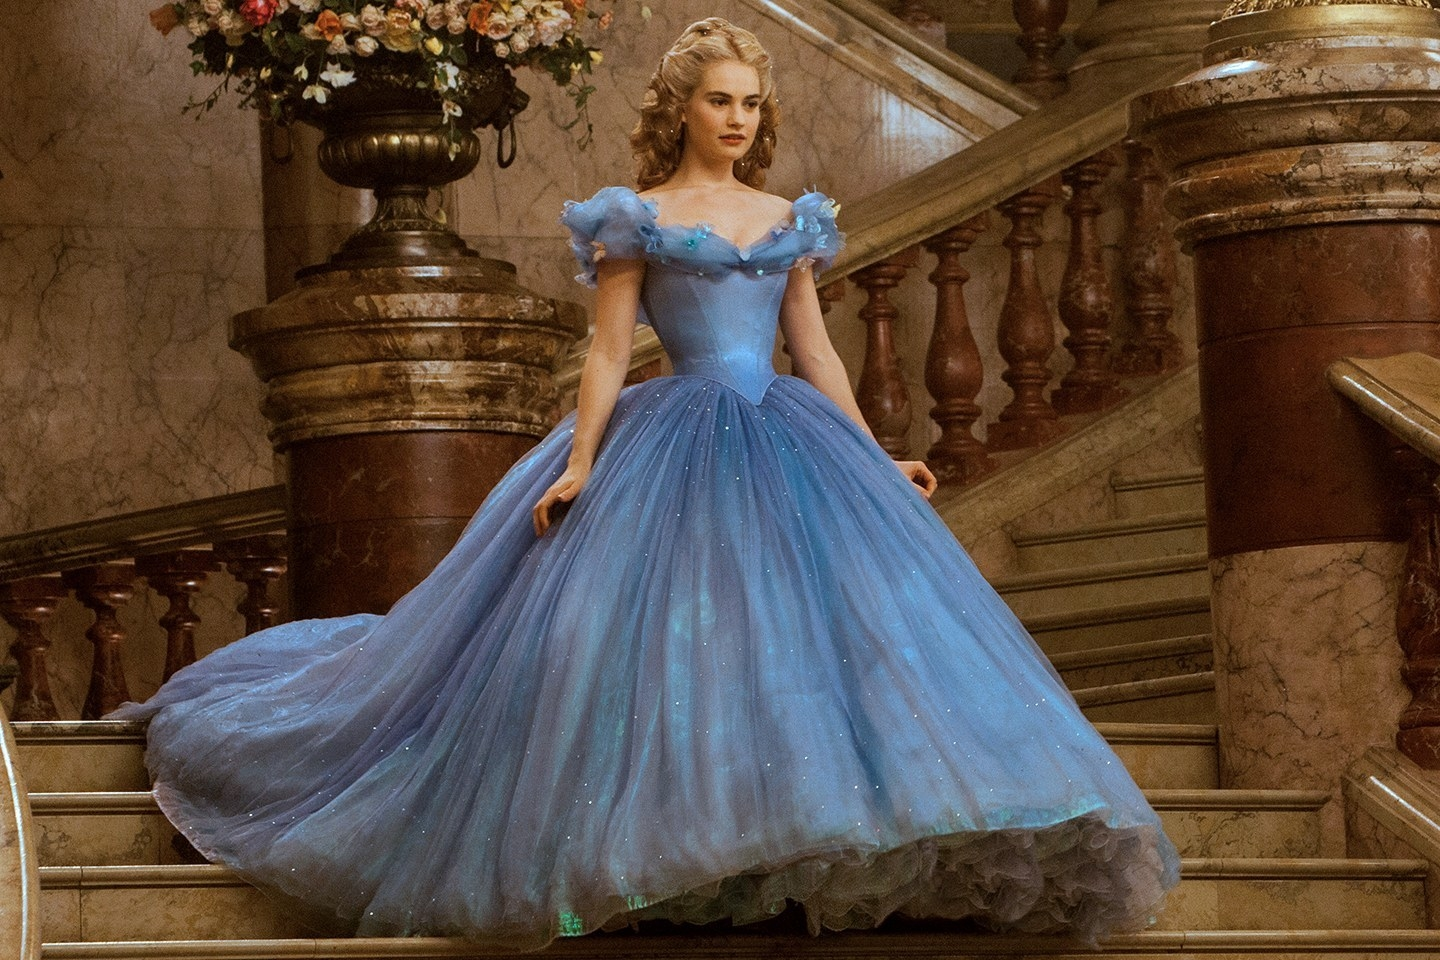 Emma Watson  turned down the role of Cinderella  in the 2015 live-action remake.